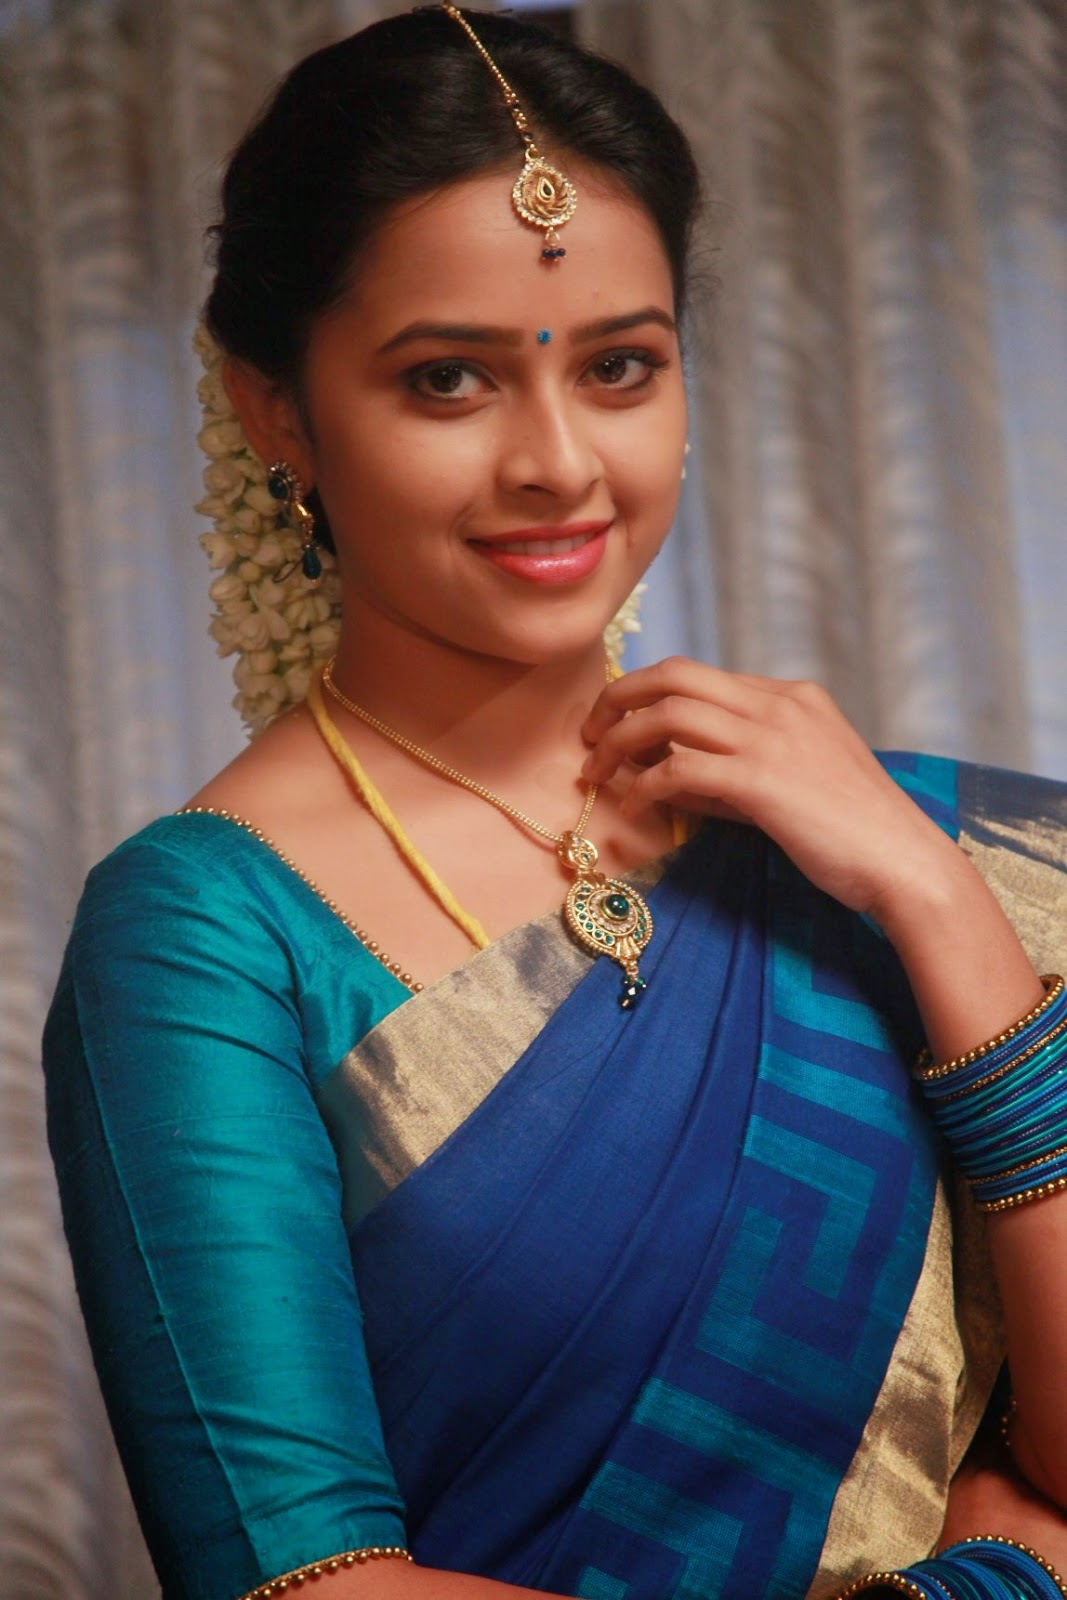 Actress%252BSri%252BDivya%252BLatest%252BCute%252BHot%252BExclusive%252BBlue%252BSaree%252BNavel%252BShow%252BSpicy%252BPhotos%252BGallery%252BFor%252BVellakkara%252BDurai%252BTamil%252BMovie%252B%25281%2529 - Actress Sri Divya's Hot & Spicy Images In Saree|Top 25-Spicy Photos|decide to go NO Glamour in Her Movies